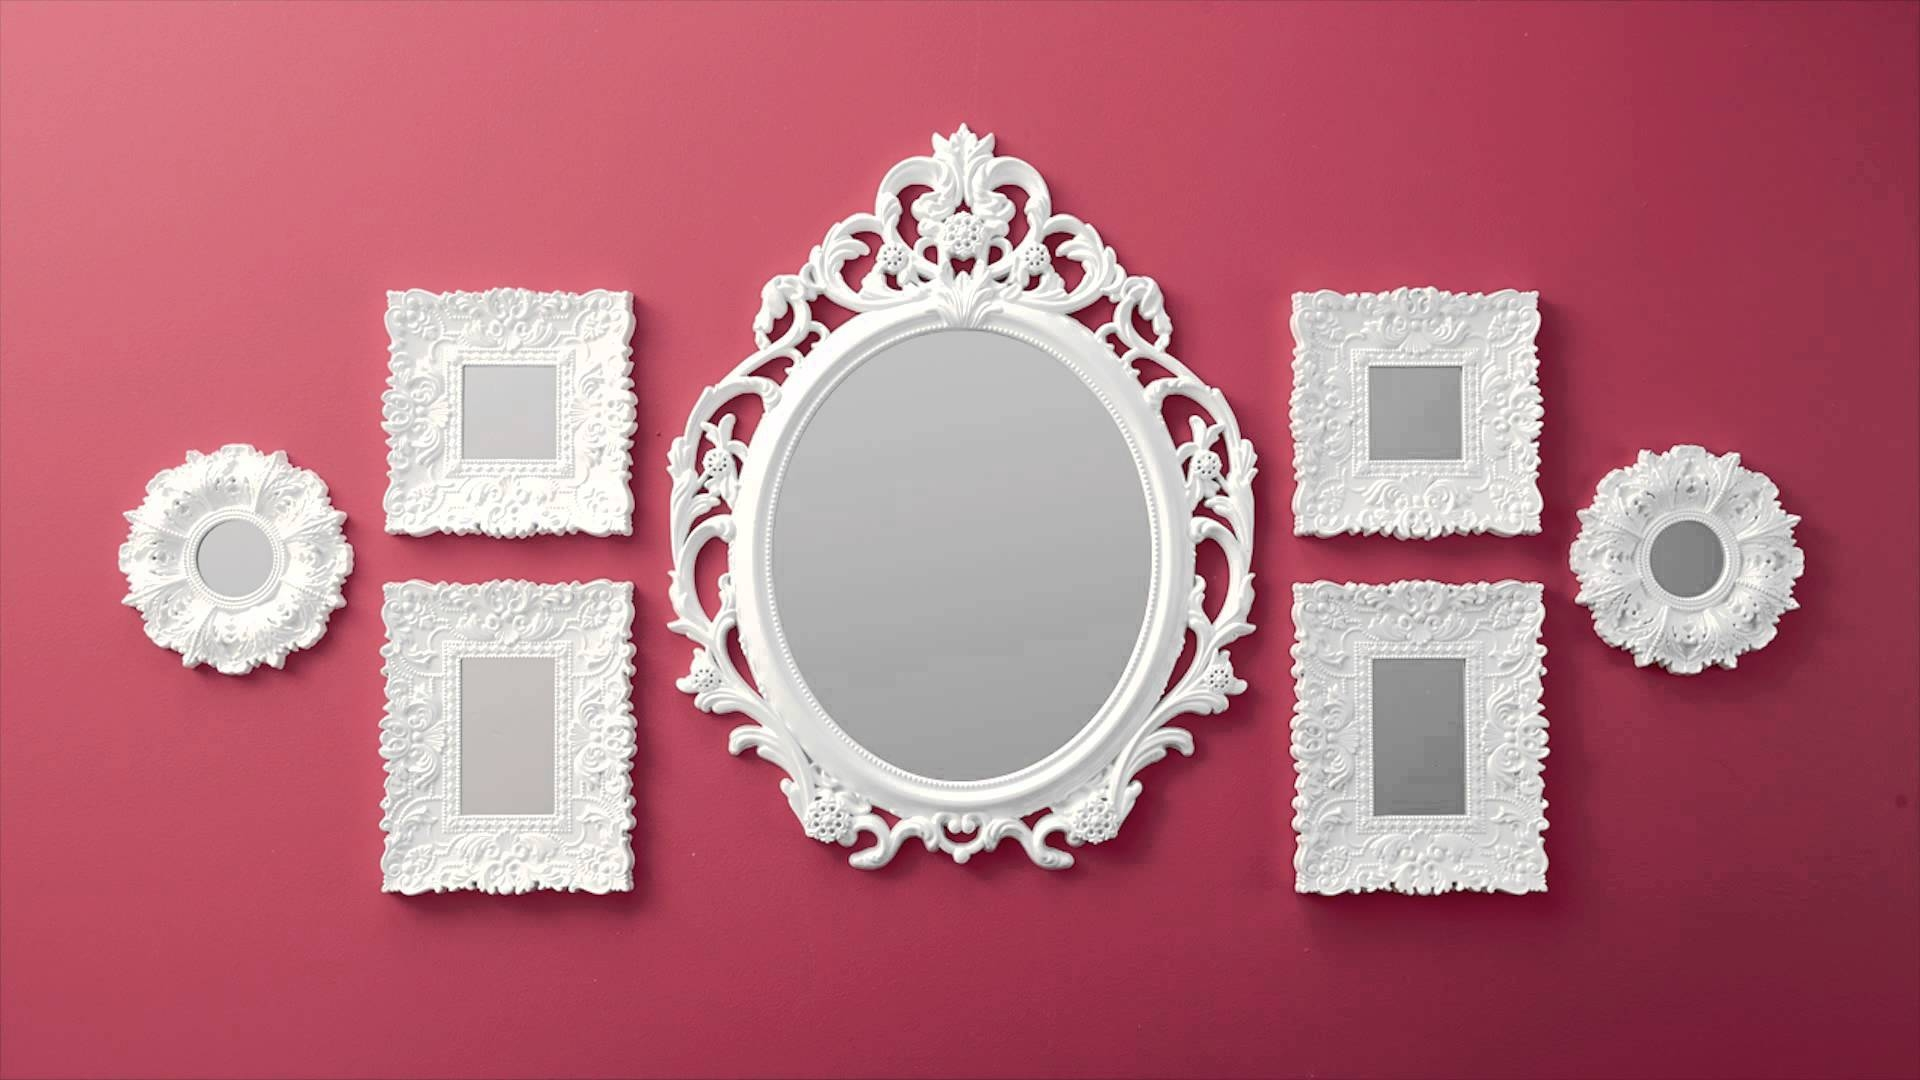 Dancing Mirrors From Better Homes And Gardens At Walmart! - Youtube throughout Baroque White Mirrors (Image 13 of 25)